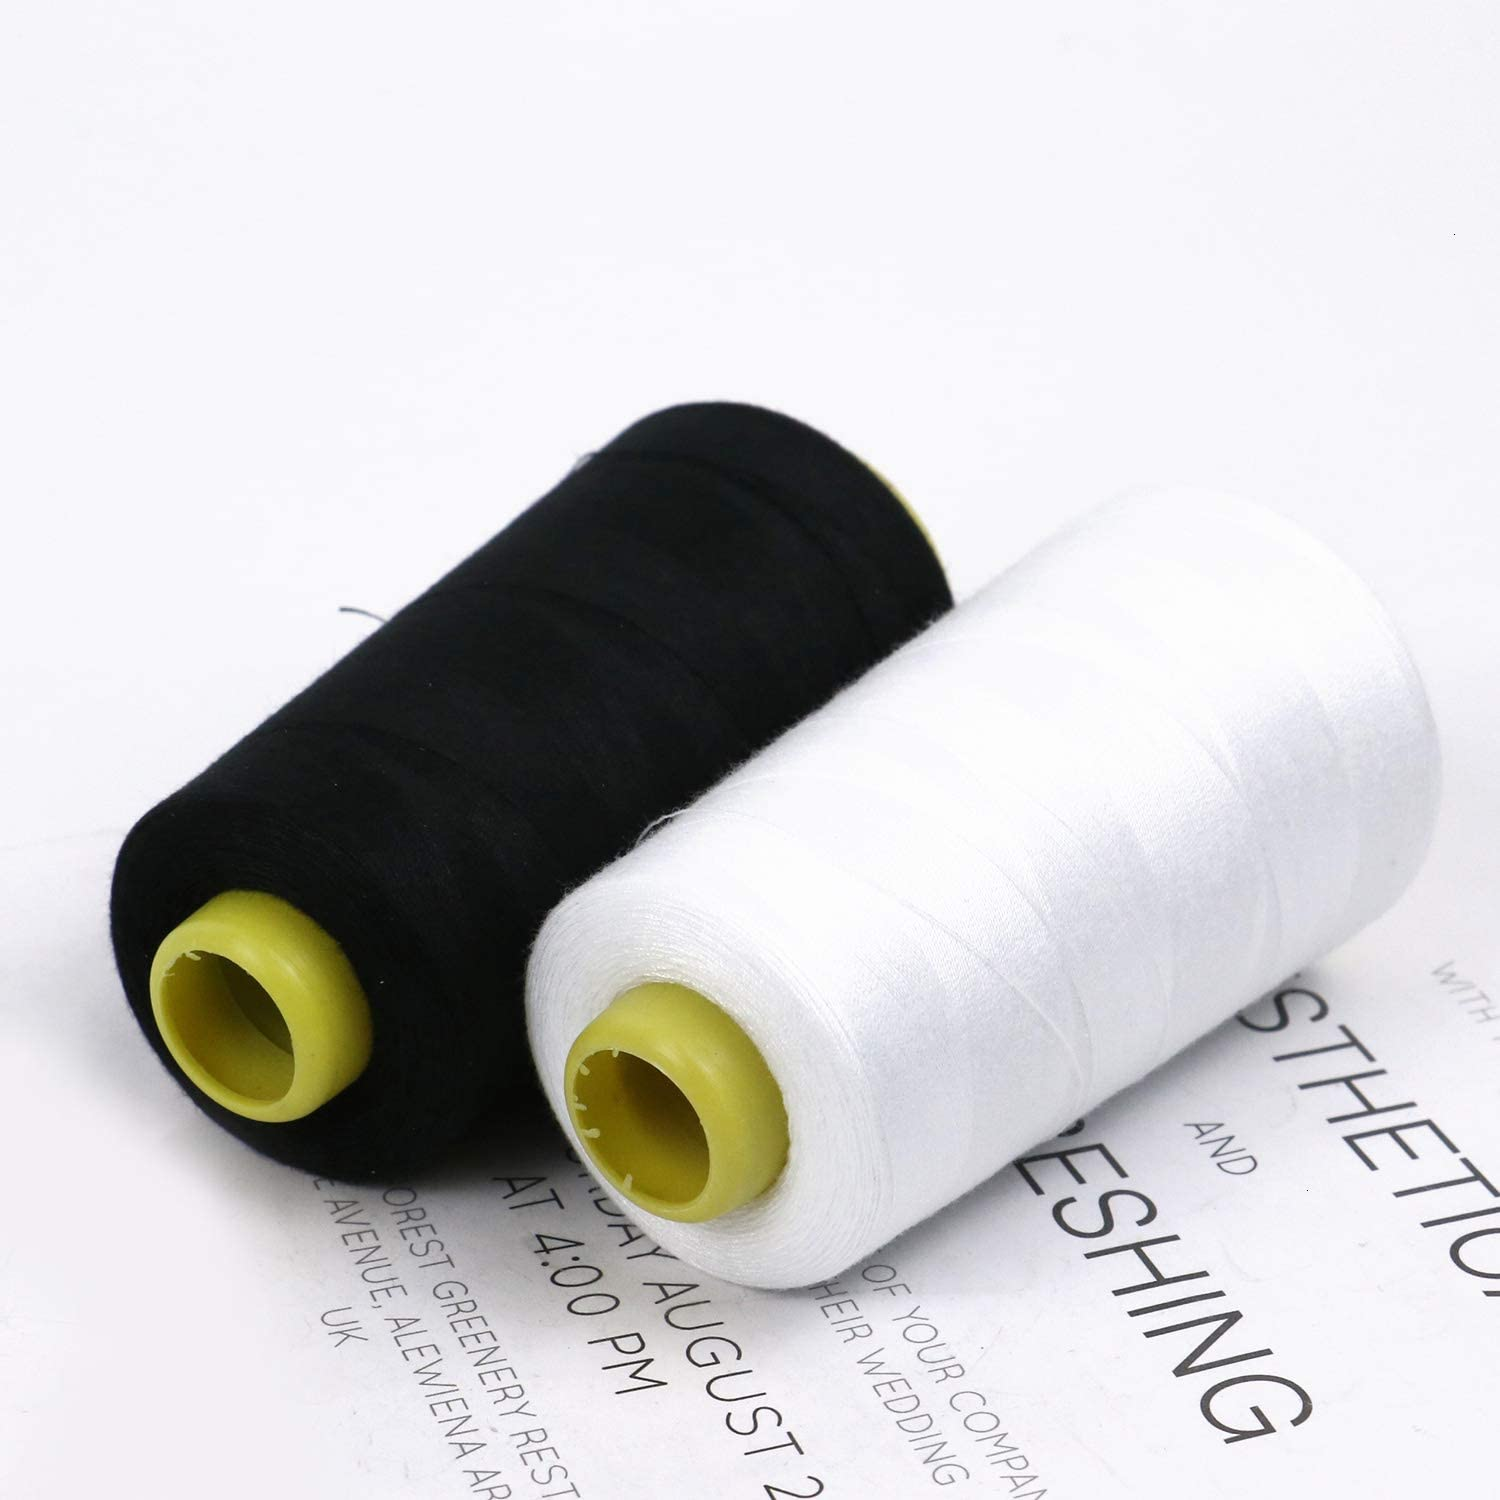 WEFOO Black and White Color 100/% Spun Polyester Overlock Cone 2 Cones 3000 Yards Each Suitable for a Variety of Sewing Machines and Handmade Products